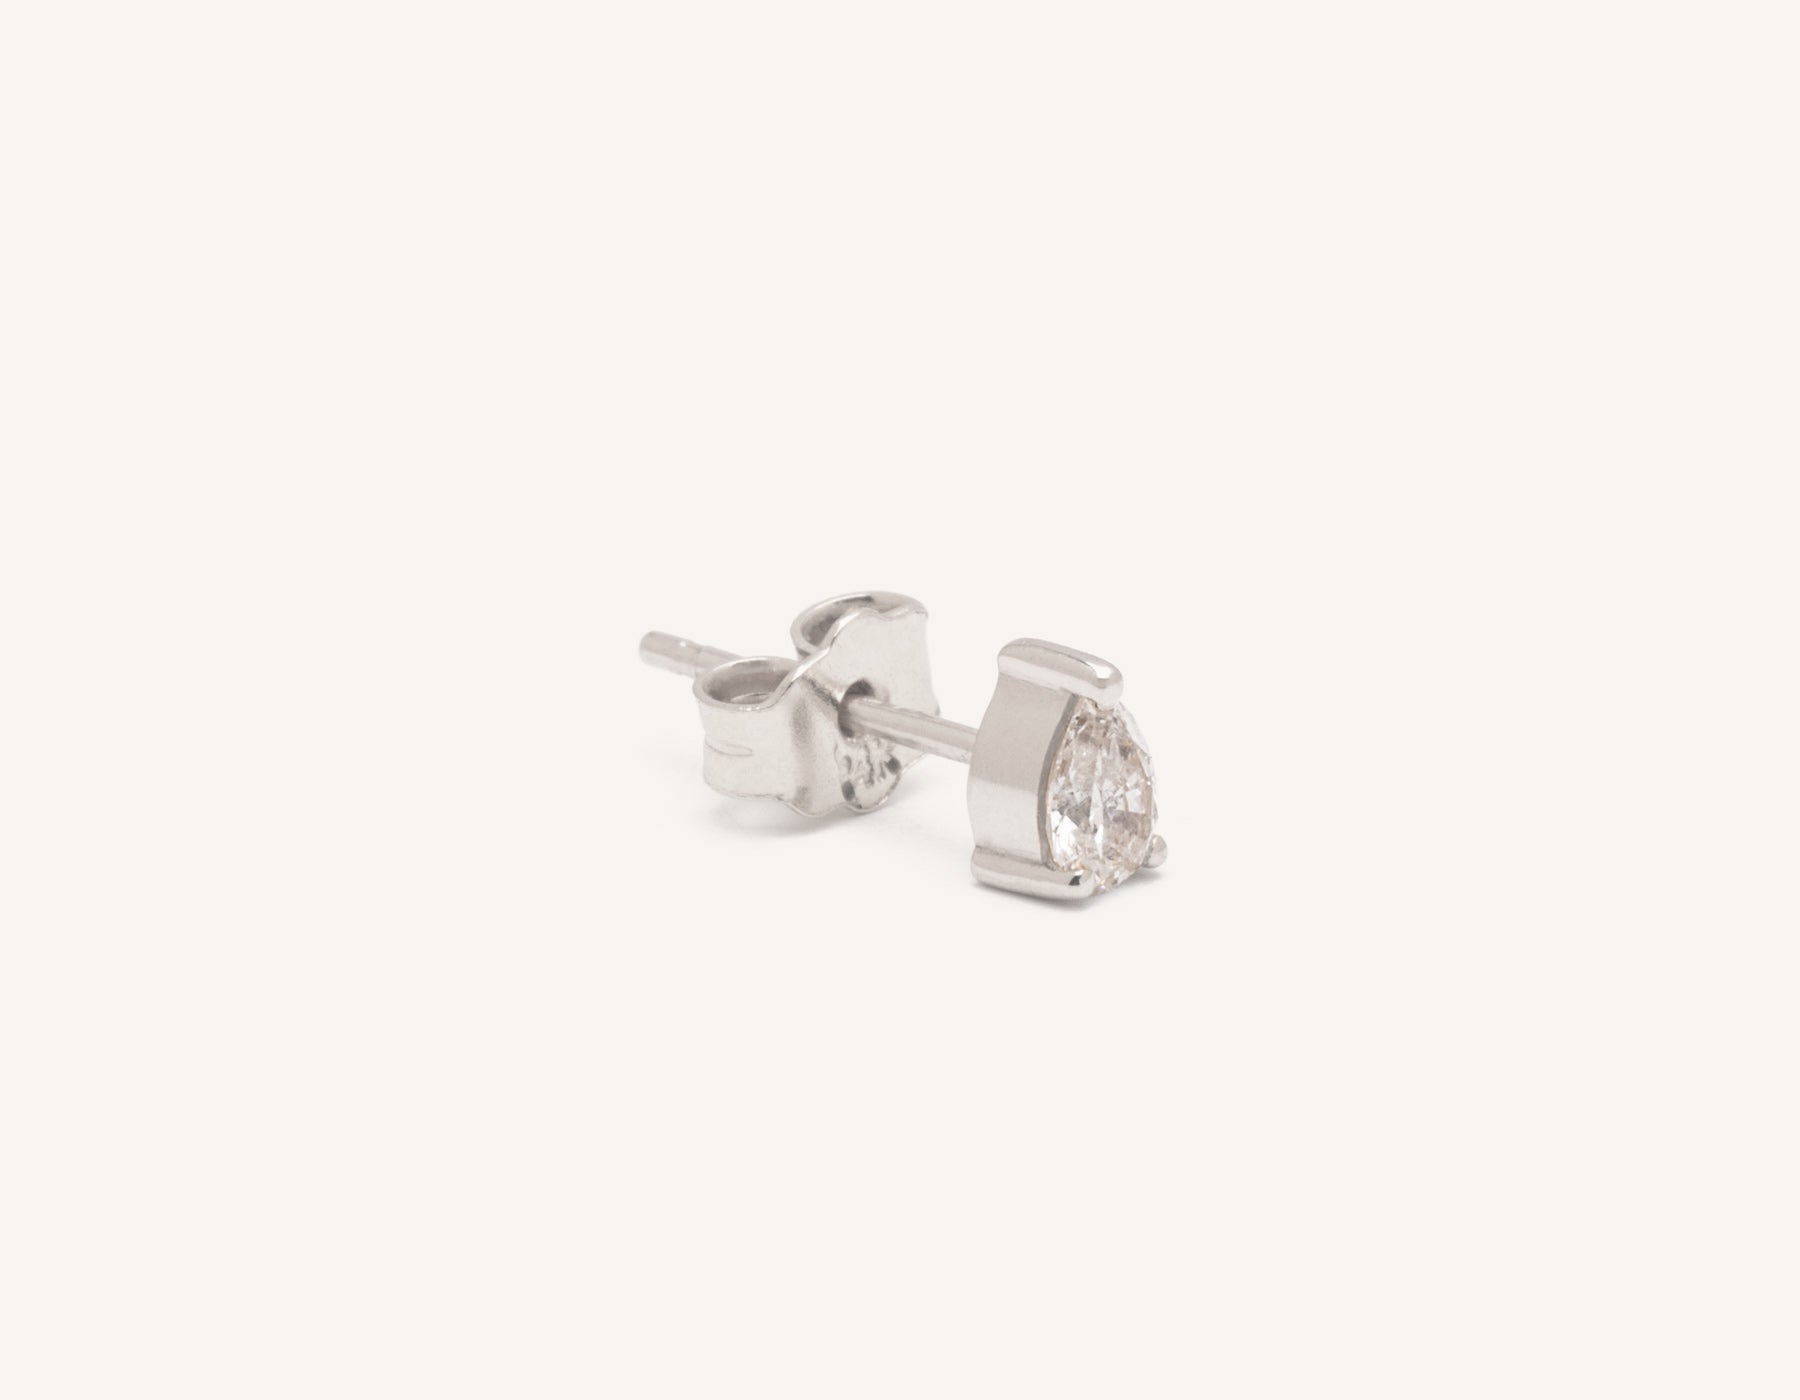 Modern Minimalist .15ct Pear Diamond Stud earrings Vrai and Oro, 14K White Gold